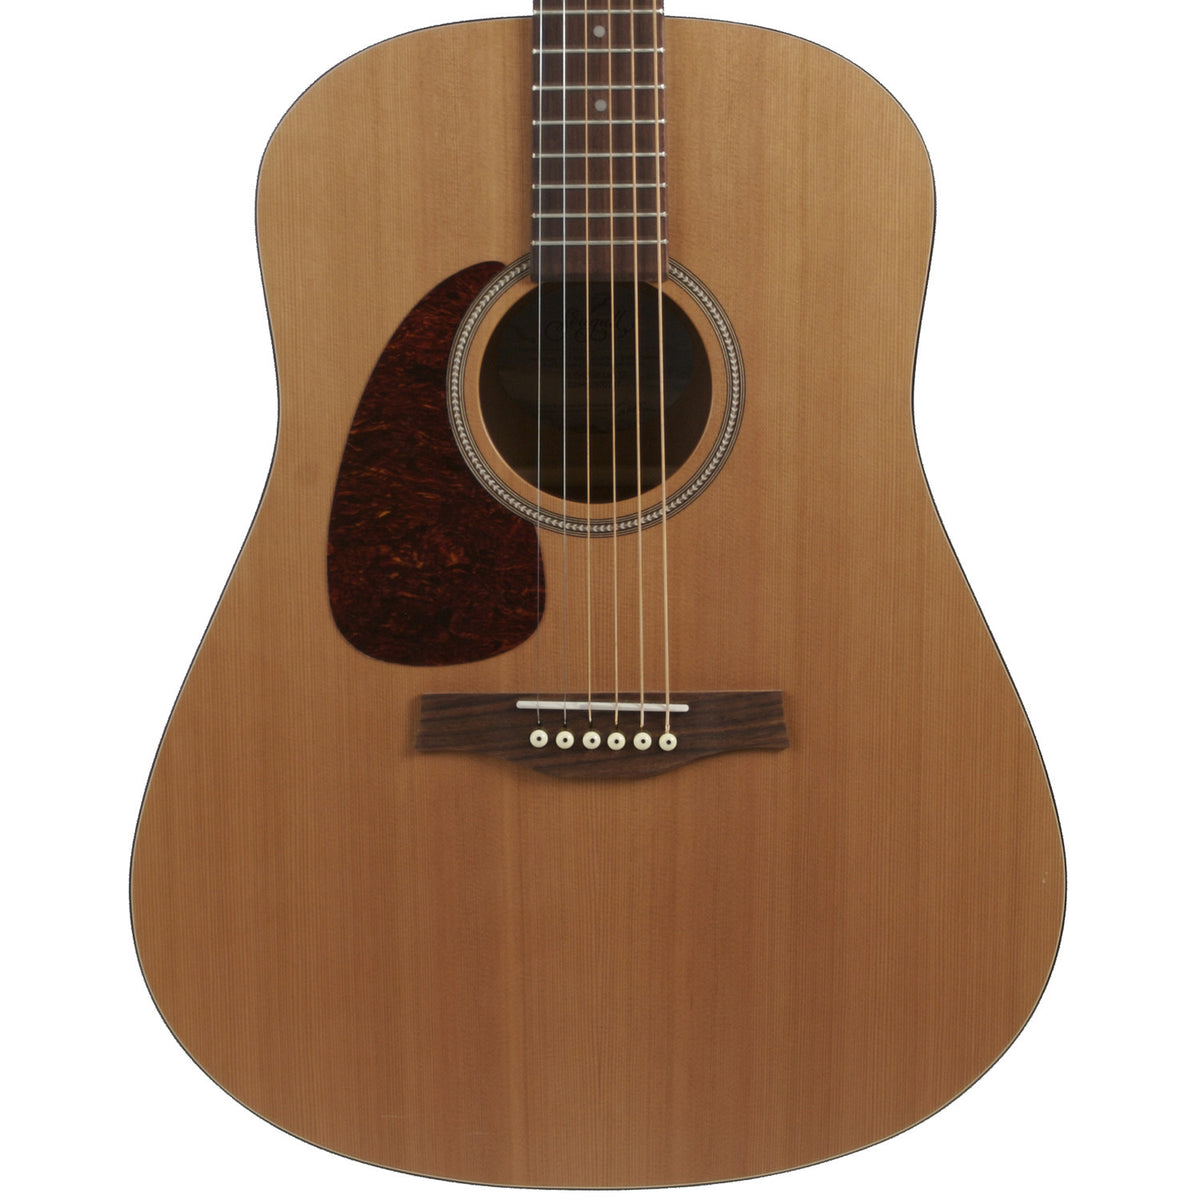 2015 Seagull S-6 Lefty Natural - Garrett Park Guitars  - 2